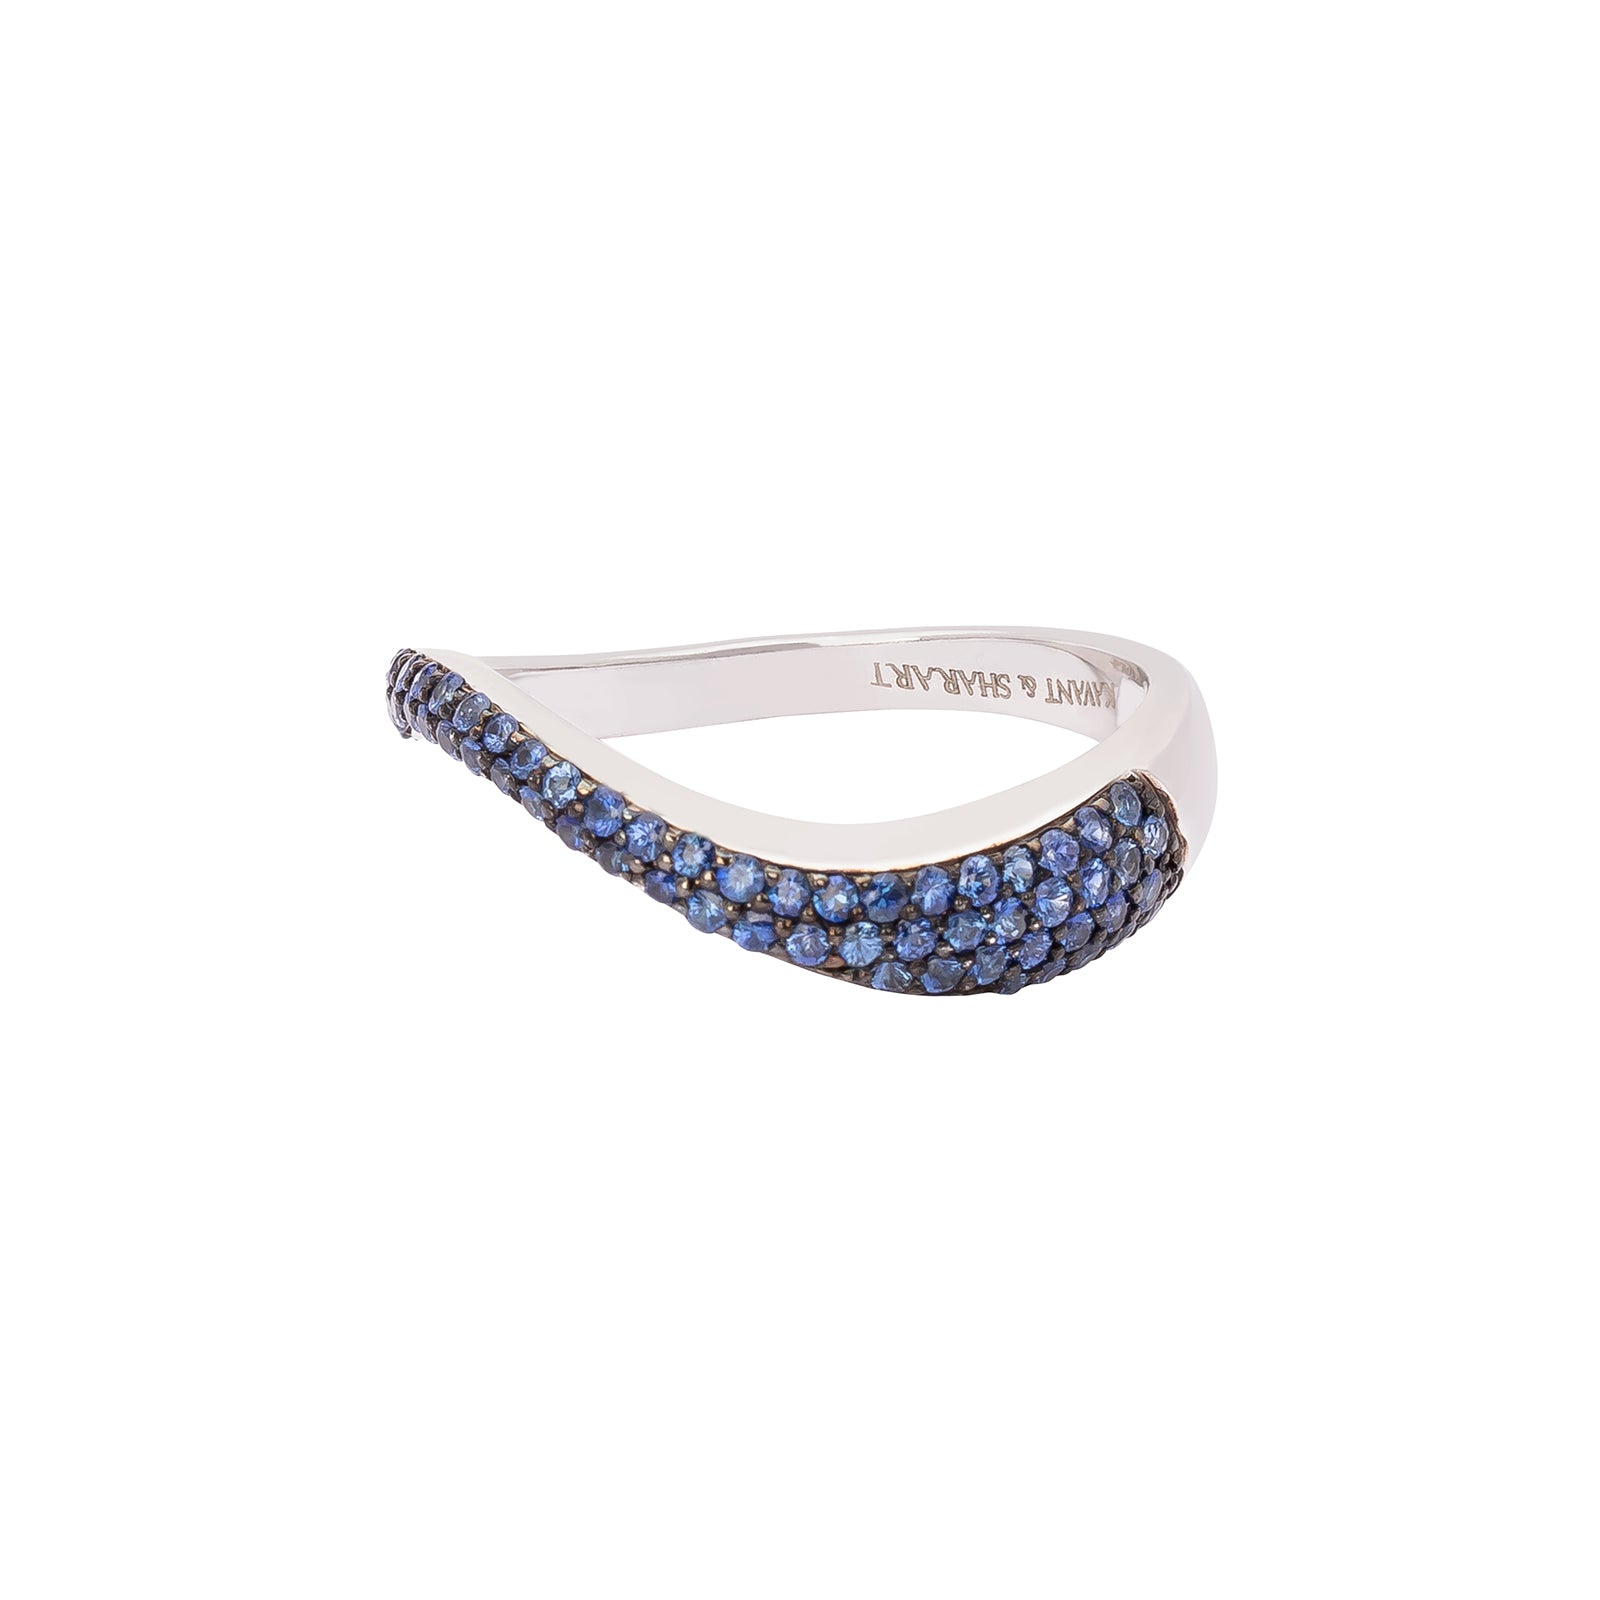 Kavant & Sharart Talay Flow Wave Ring - Sapphire - Rings - Broken English Jewelry